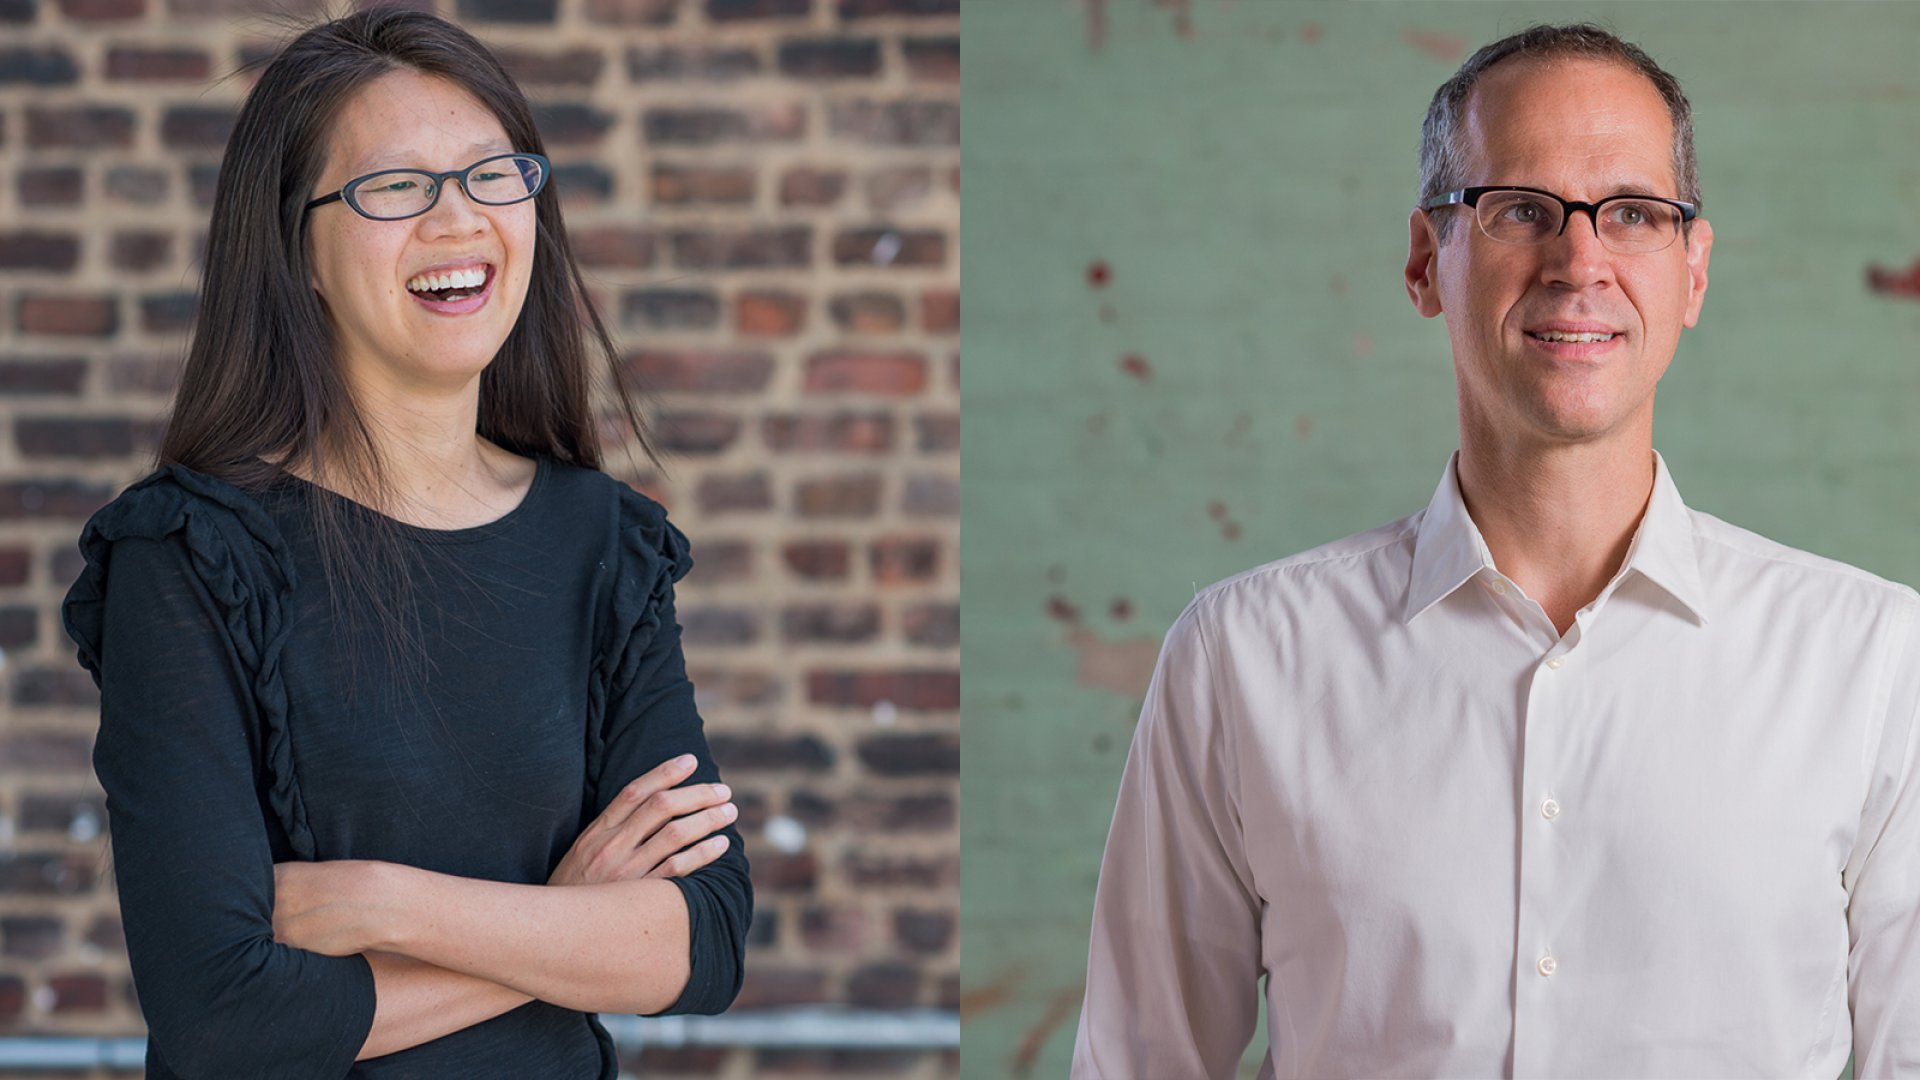 Lisa Chow (left) and Alex Blumberg host the <em>StartUp</em> podcast, now in its third season.